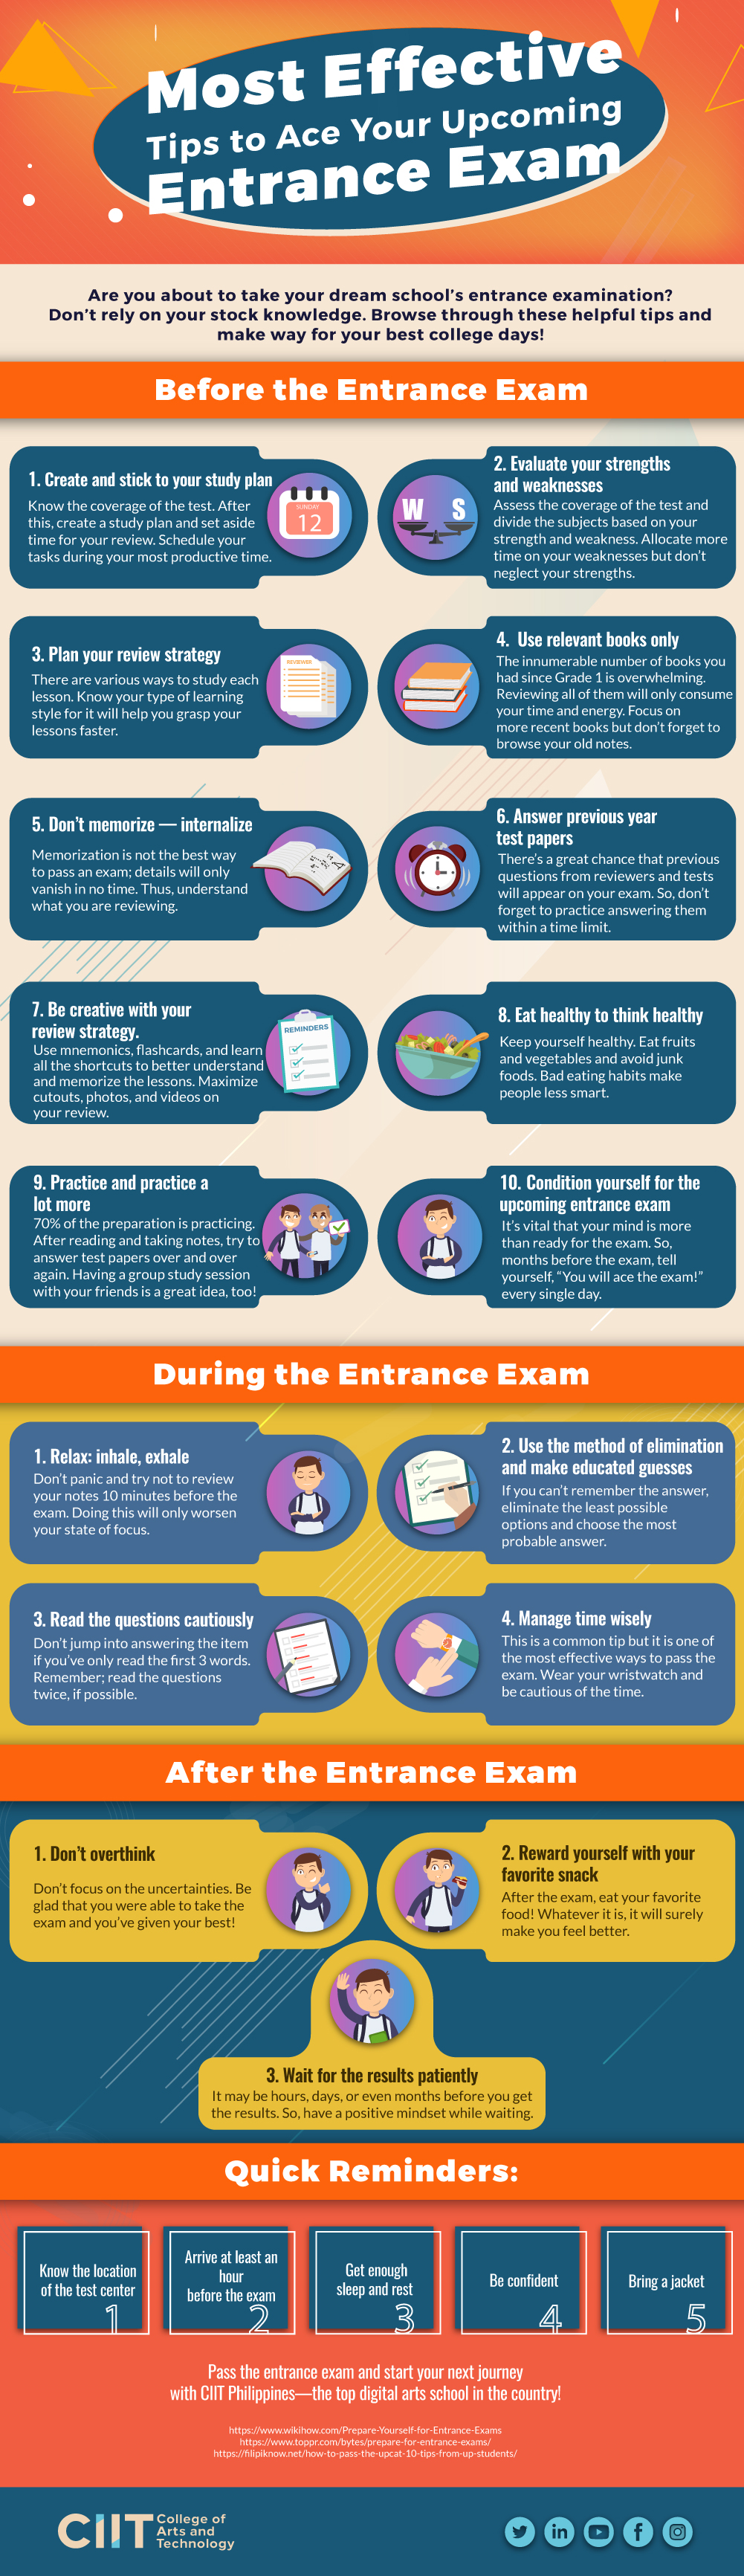 Most Effective Tips to Ace Your Upcoming Entrance Exam Infographic